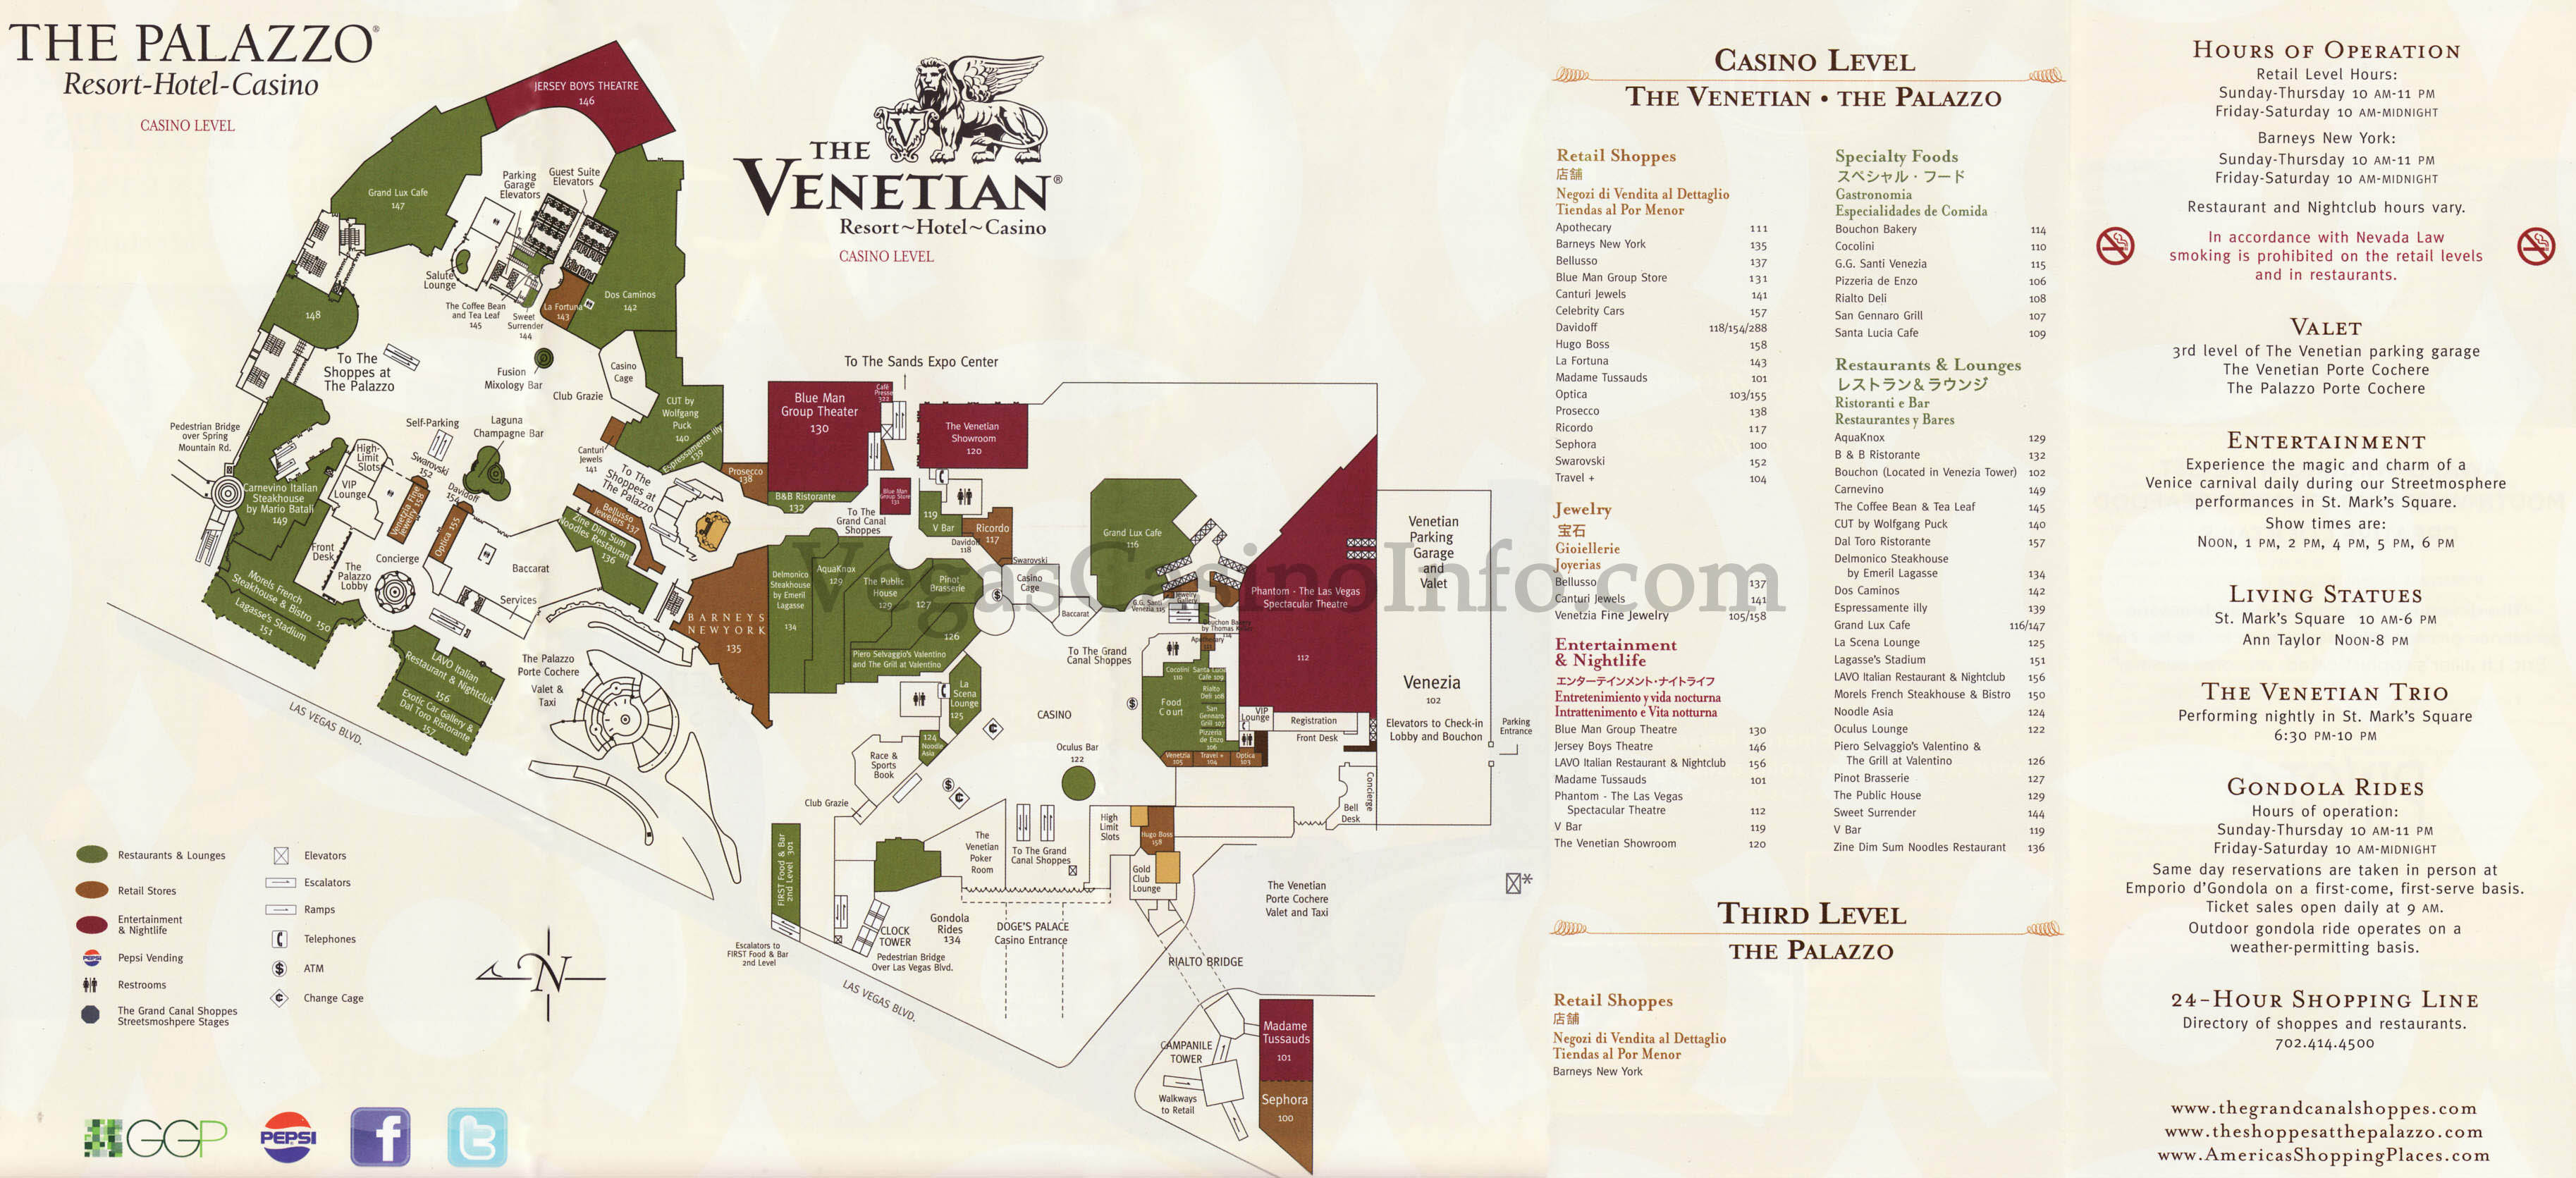 Venetian casino map hotel casino business plans